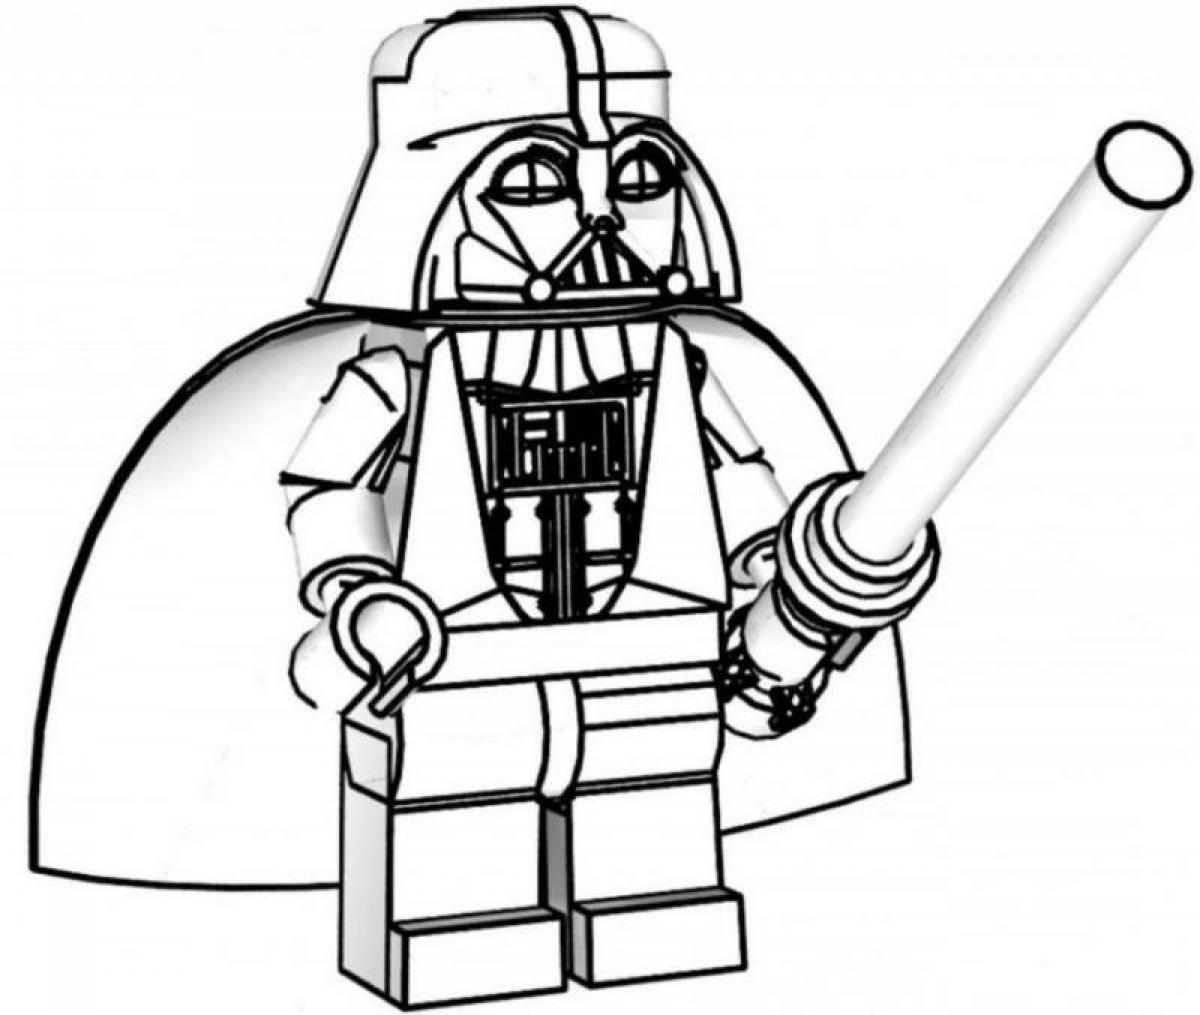 star wars coloring pages darth vader the evil darth vader in star wars coloring page download darth vader star coloring pages wars